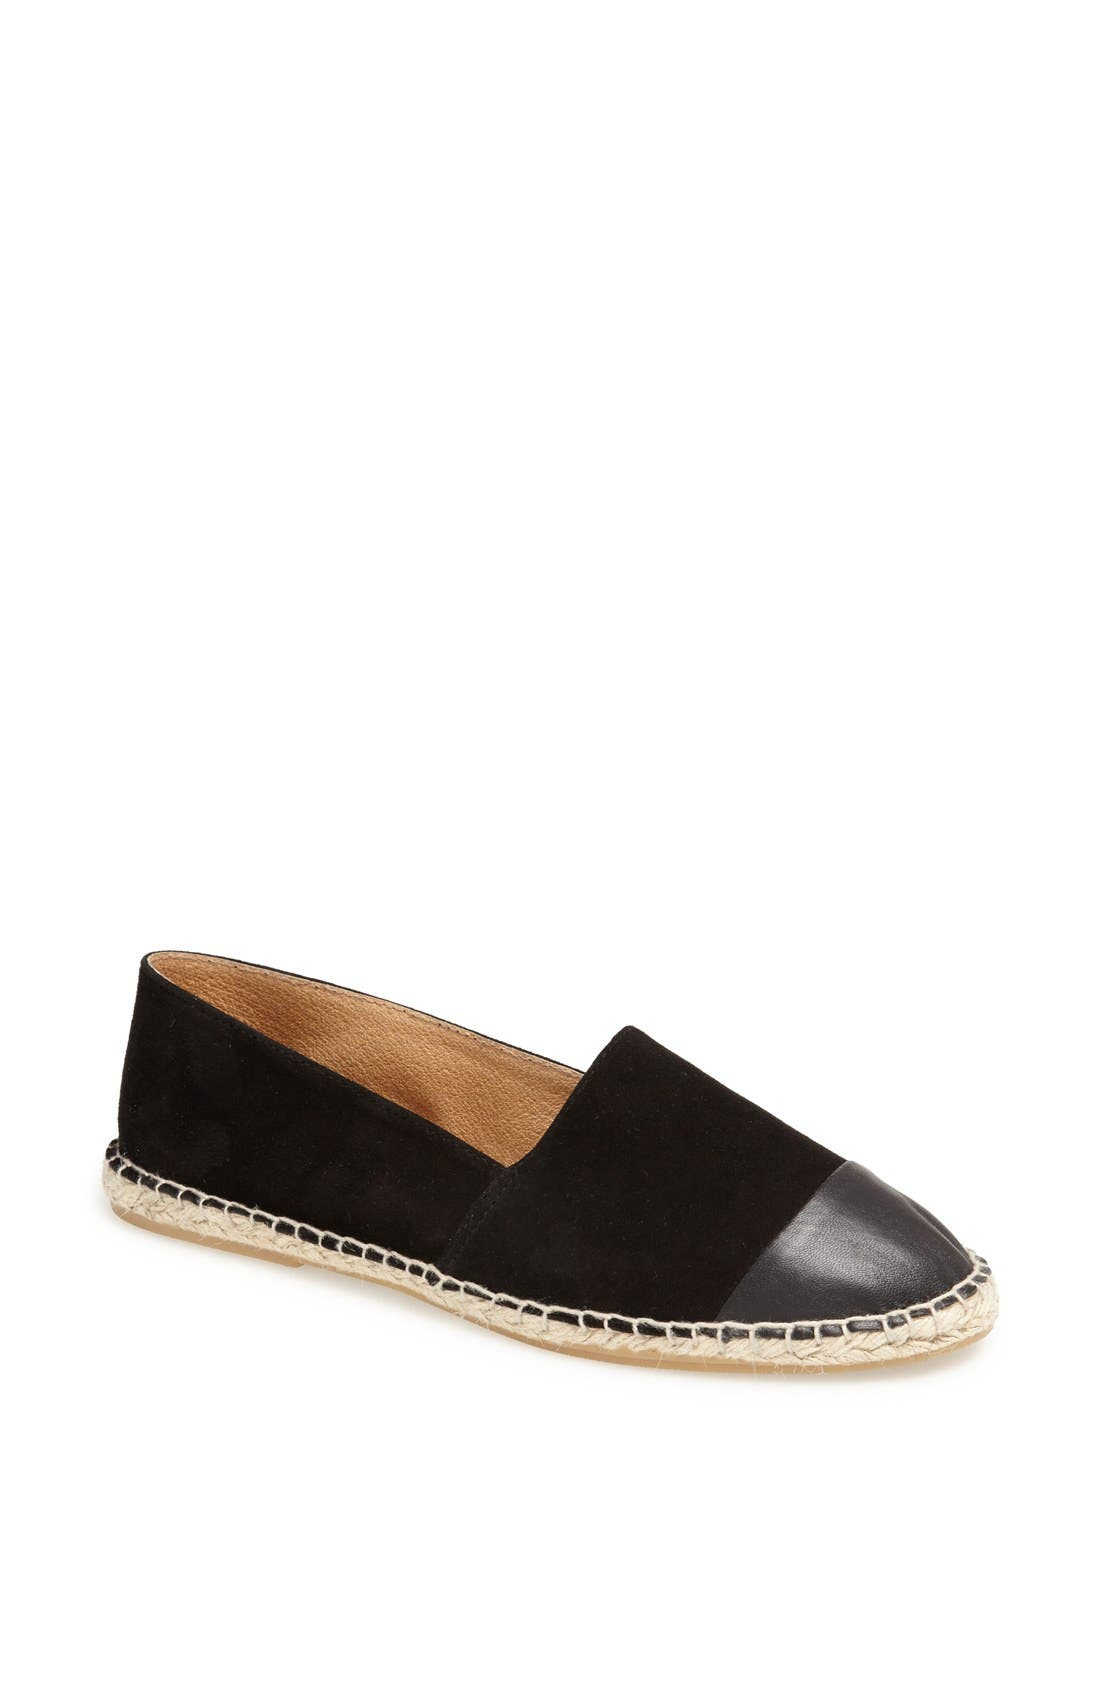 Alternate Image 1 Selected - Topshop 'Koala' Espadrille